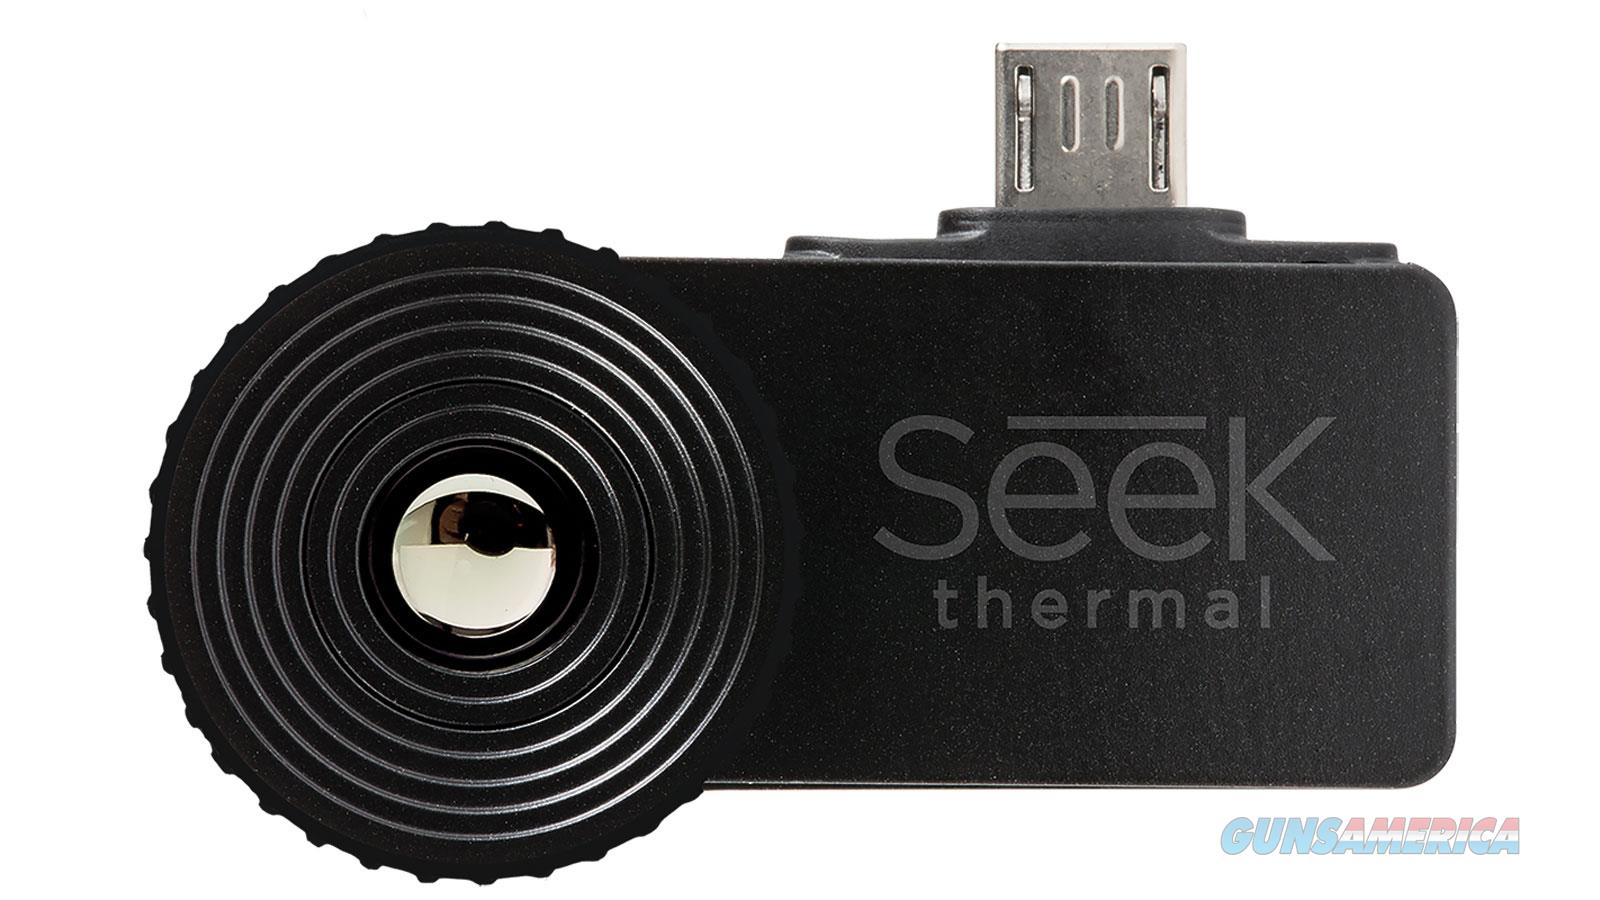 Seek Thermal Seek Therm Android Comp-Xr UT-AAA  Non-Guns > Night Vision